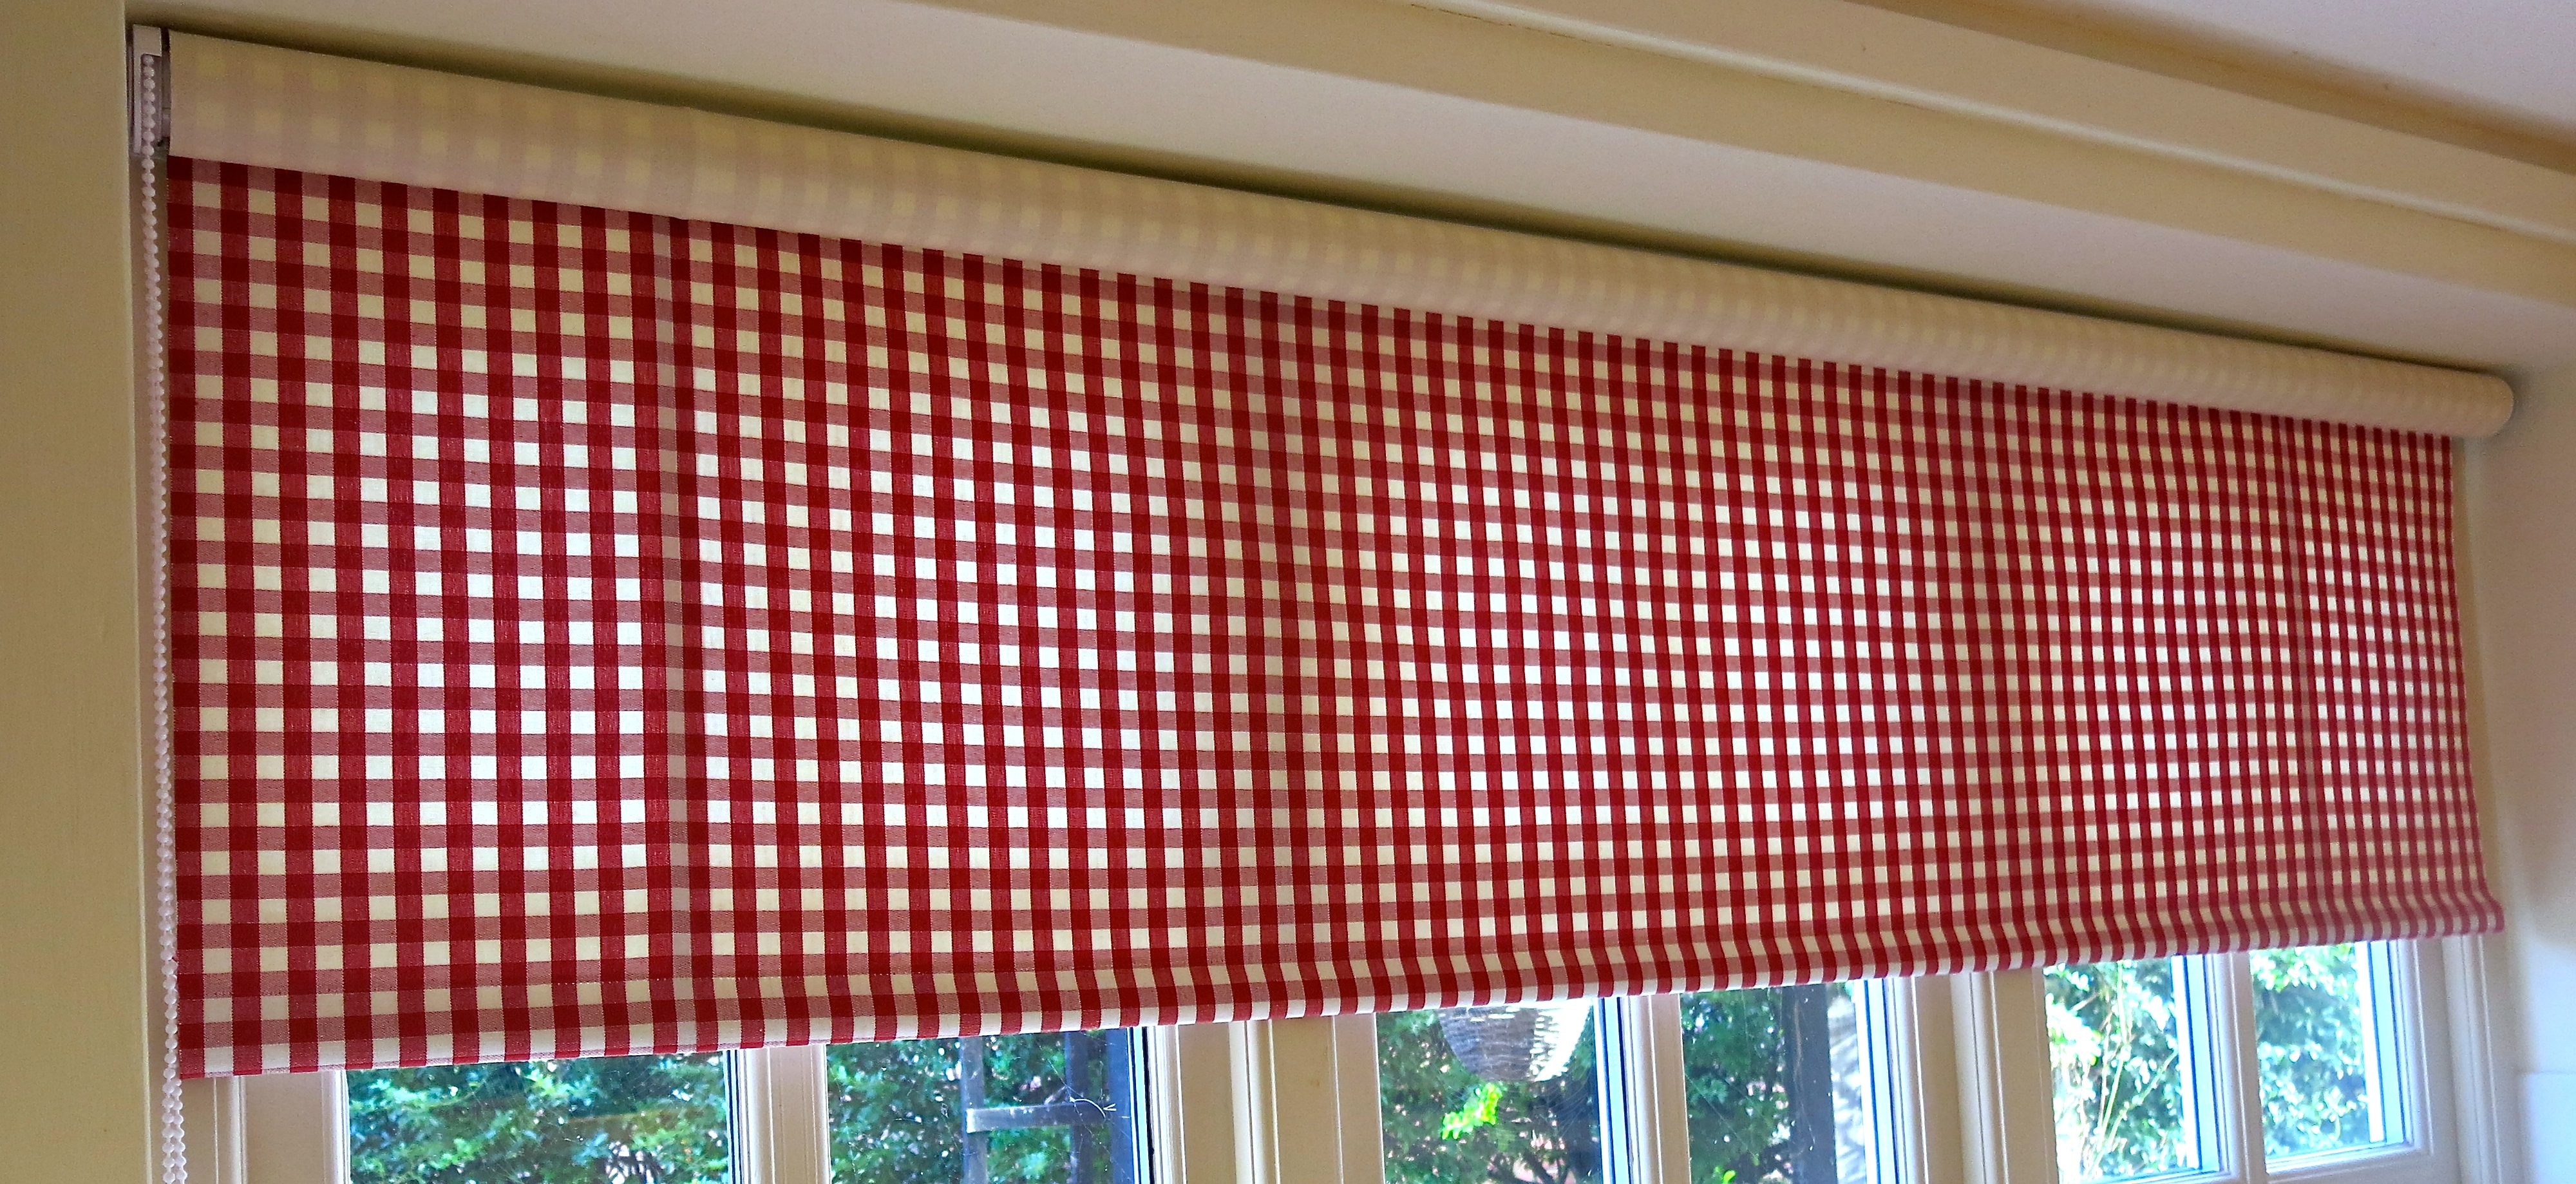 Featured Image of Gingham Roman Blinds